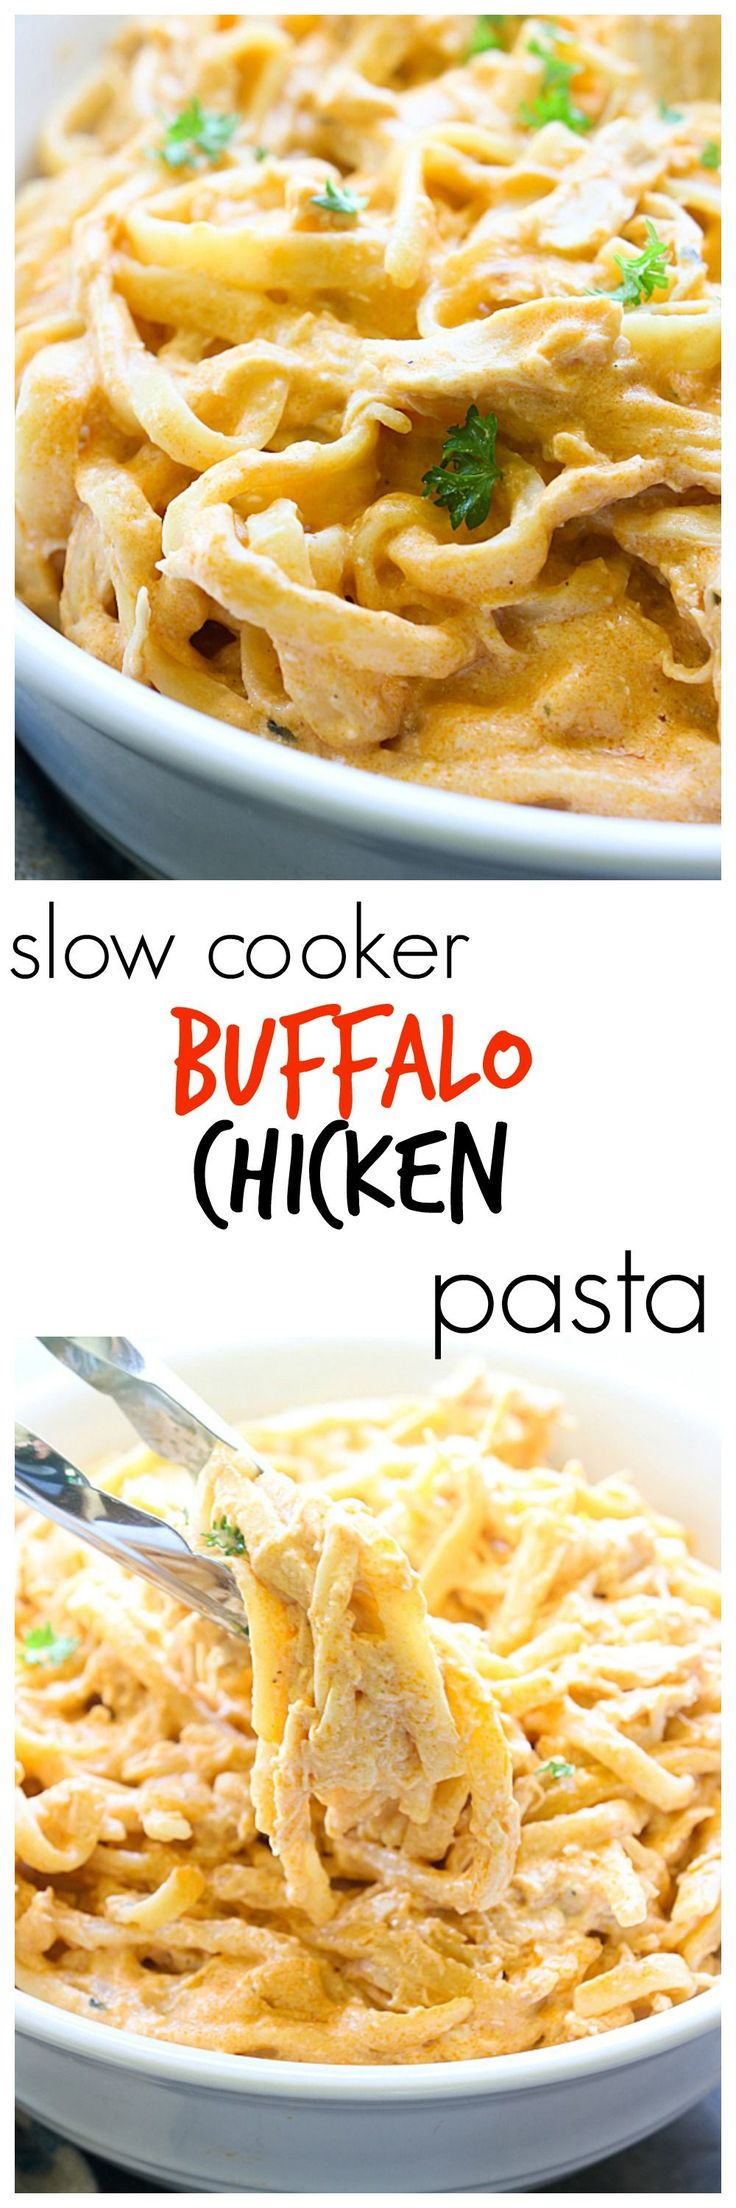 Slow cooker recipes are some of the best out there. This Buffalo Chicken Pasta is no exception. It's so creamy and has a little kick with buffalo wing sauce!